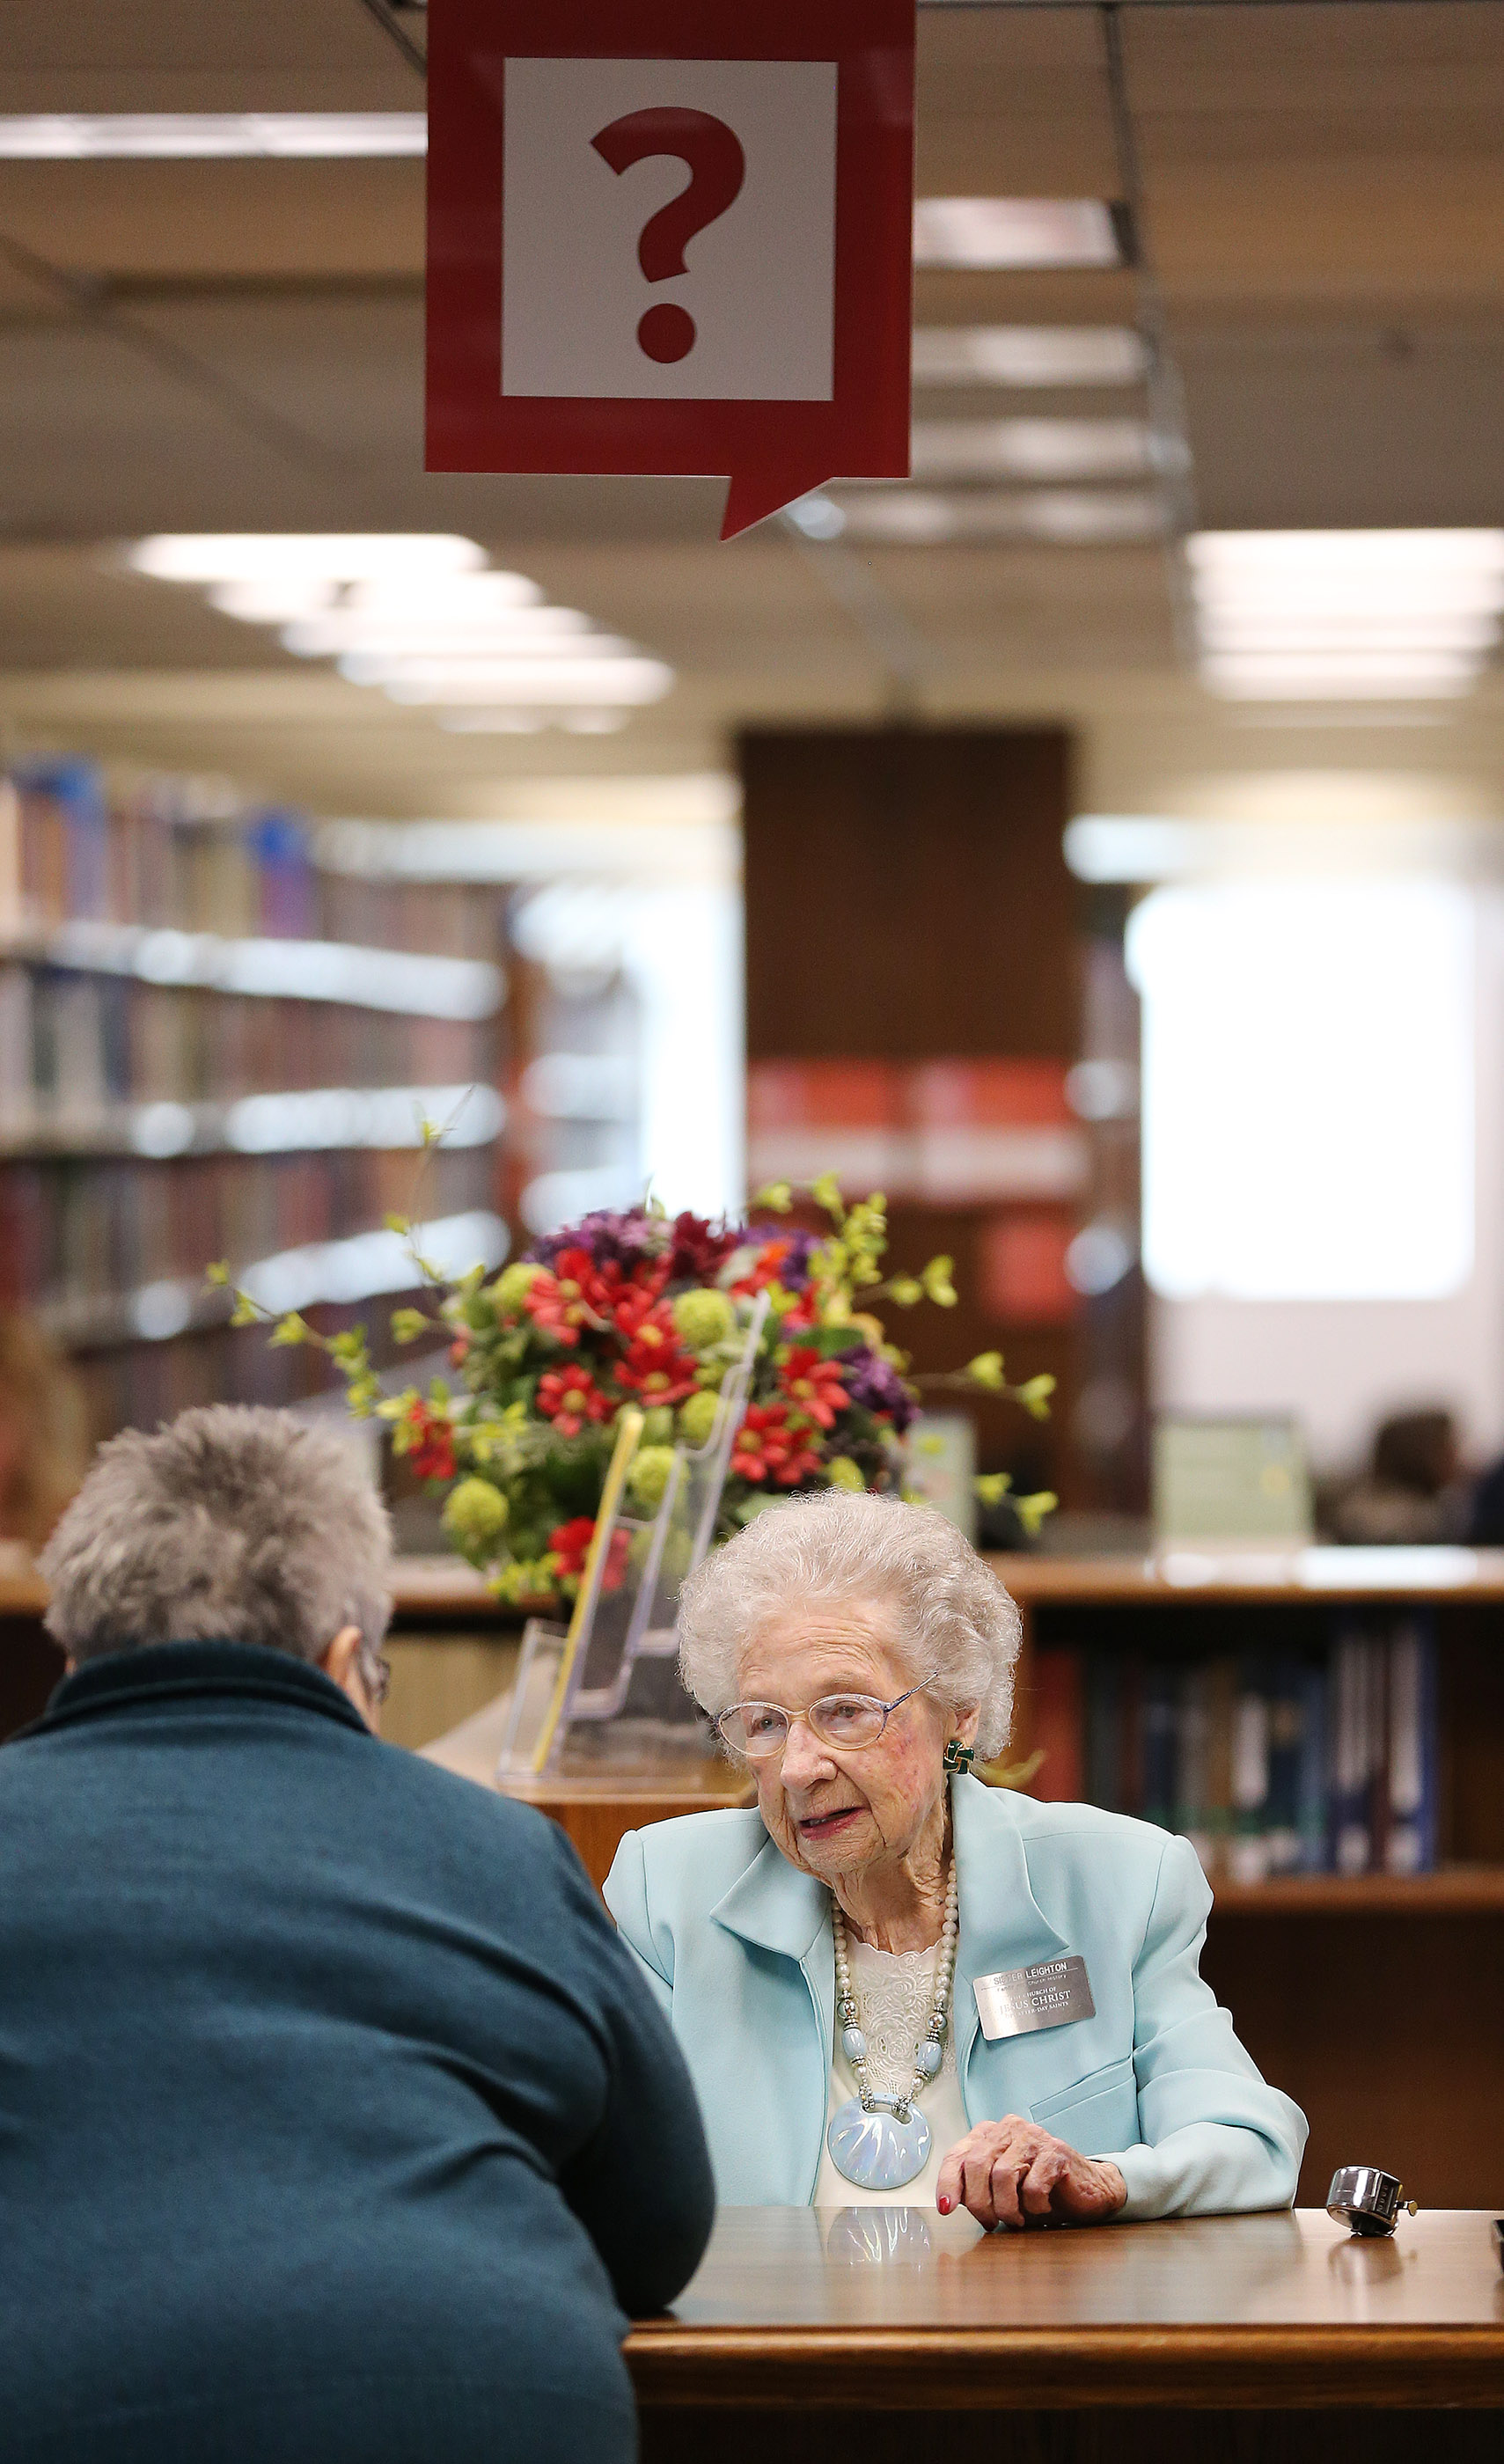 Nellie Leighton, 99, welcomes visitors to the Family History Library in Salt Lake City on Tuesday, Jan. 22, 2019. Leighton will celebrate her 100th birthday in February.